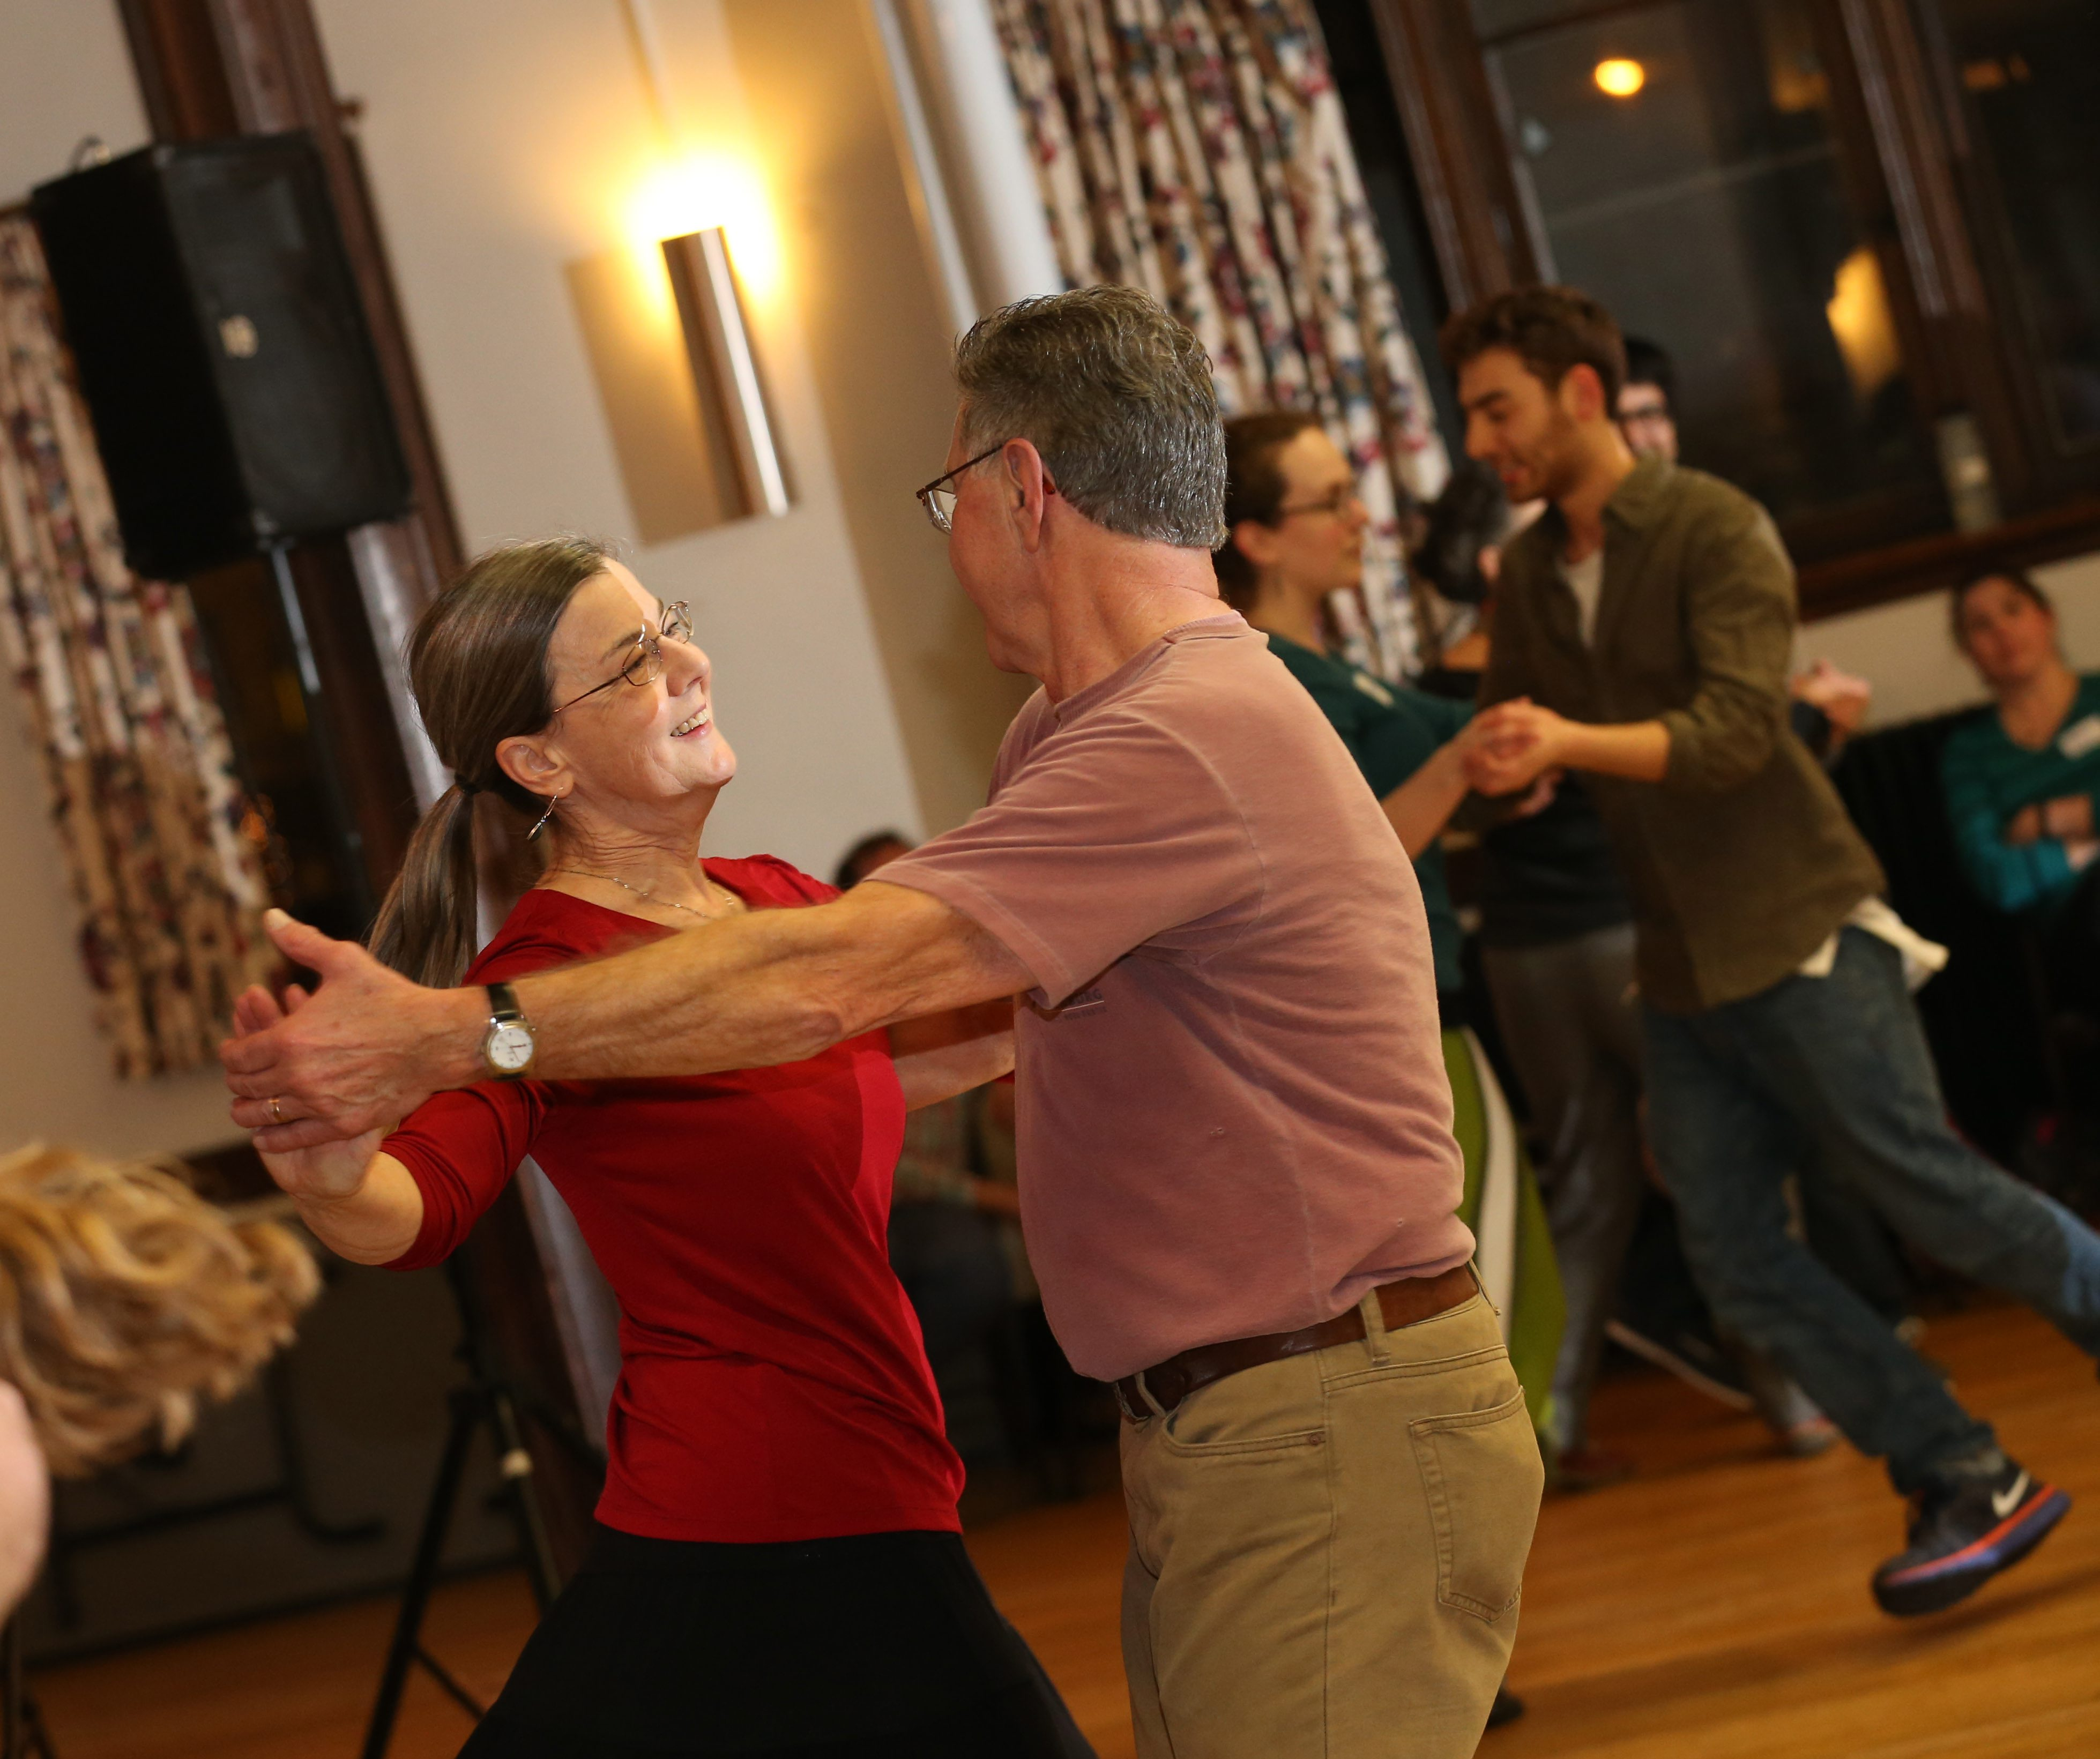 The Queen City Contra Dancers will meet Saturday in the Unitarian Universalist Church in the Elmwood Village. All dances are open to the public and beginners are welcome. (Sharon Cantillon/News file photo)